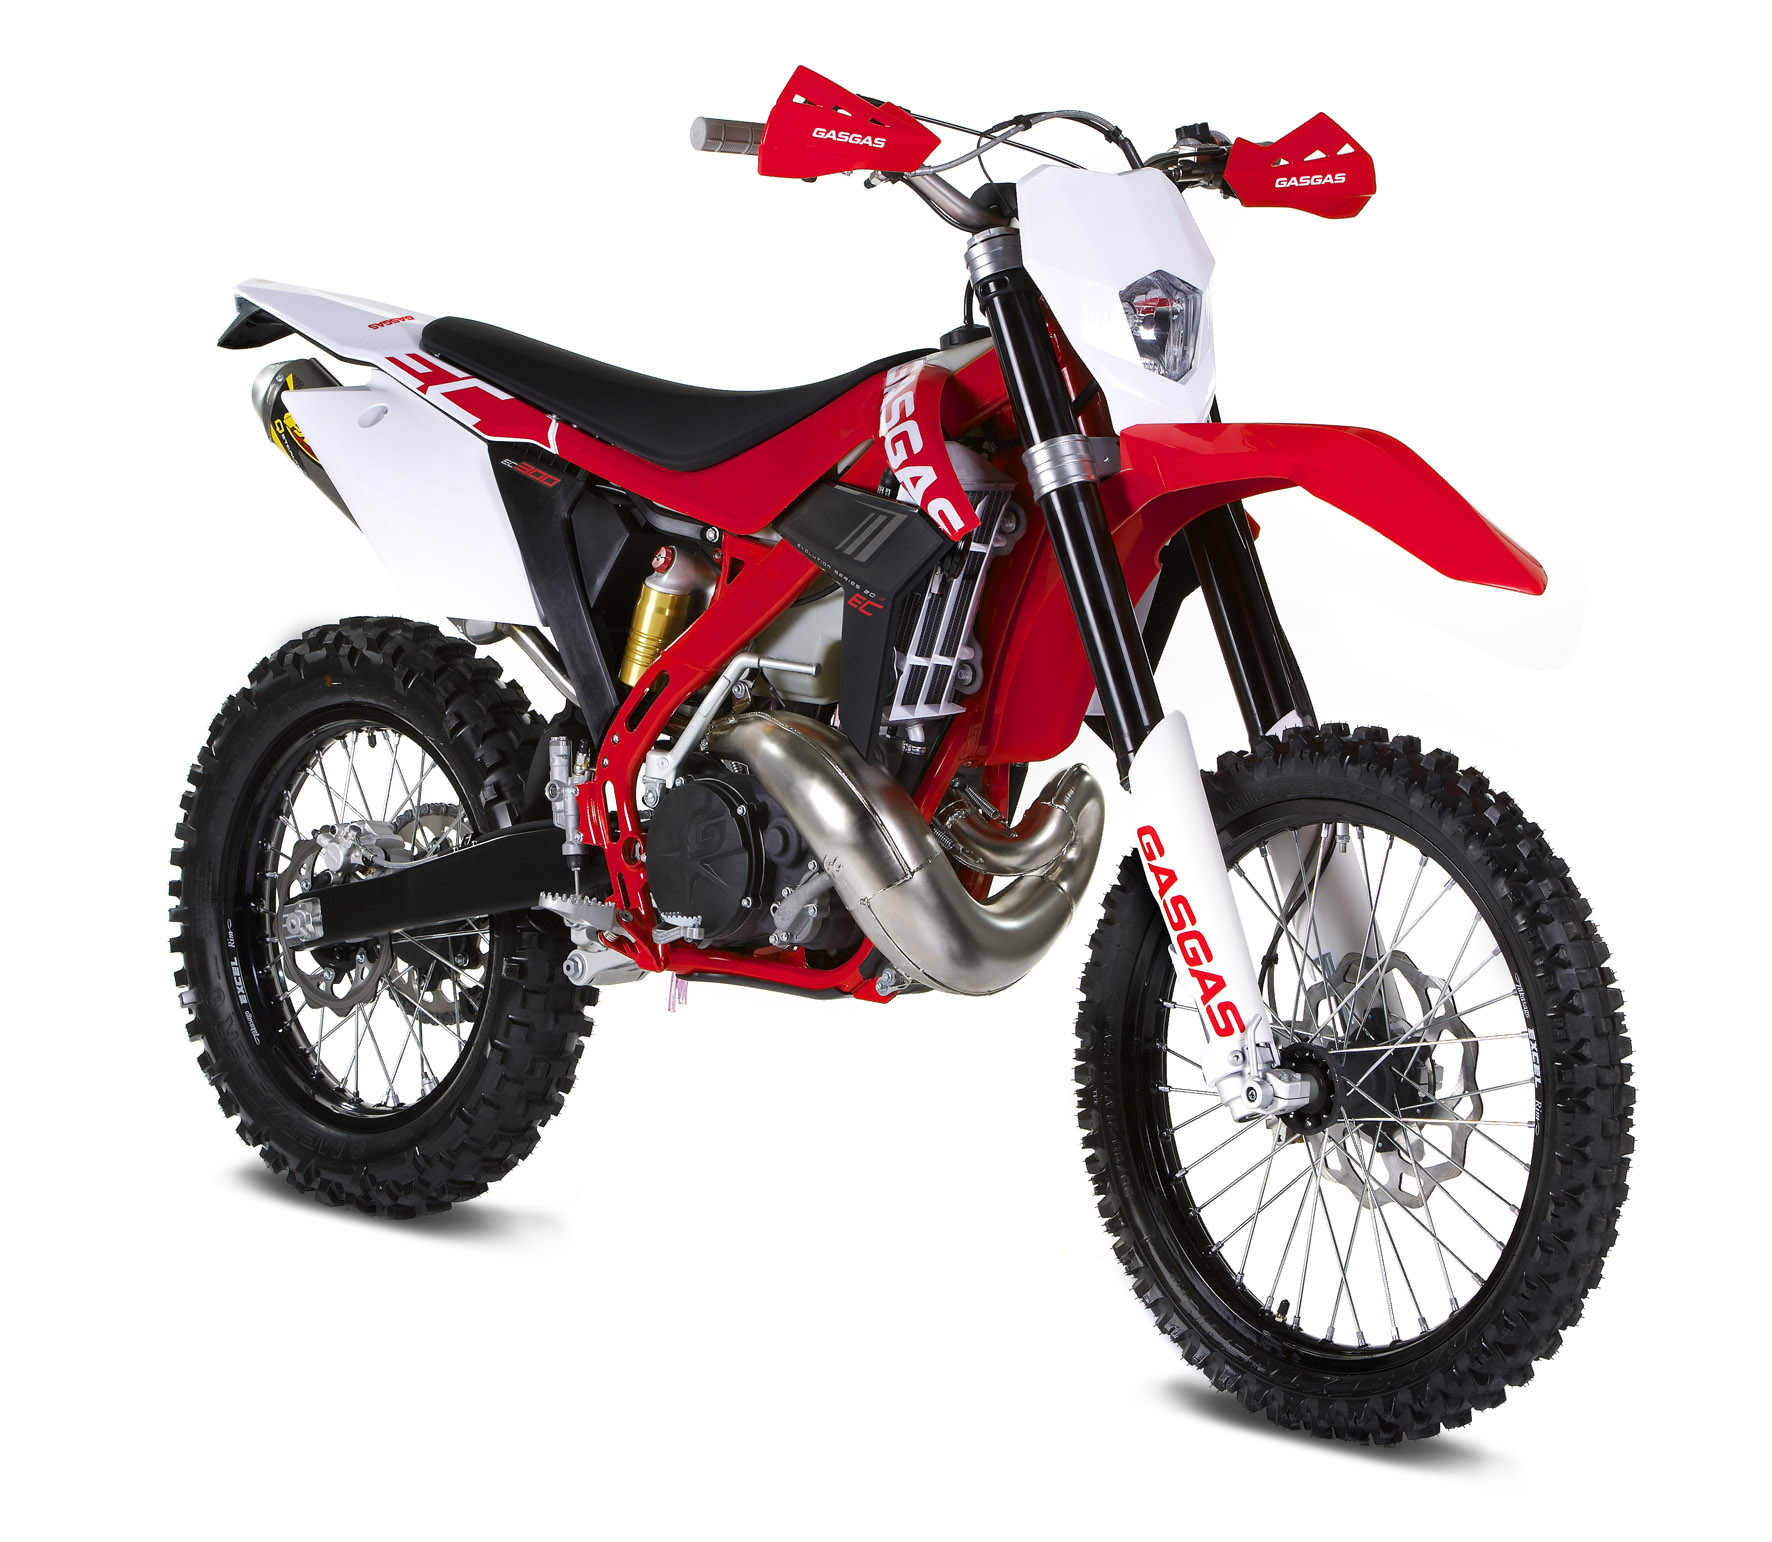 GAS GAS SM 450 images #73539